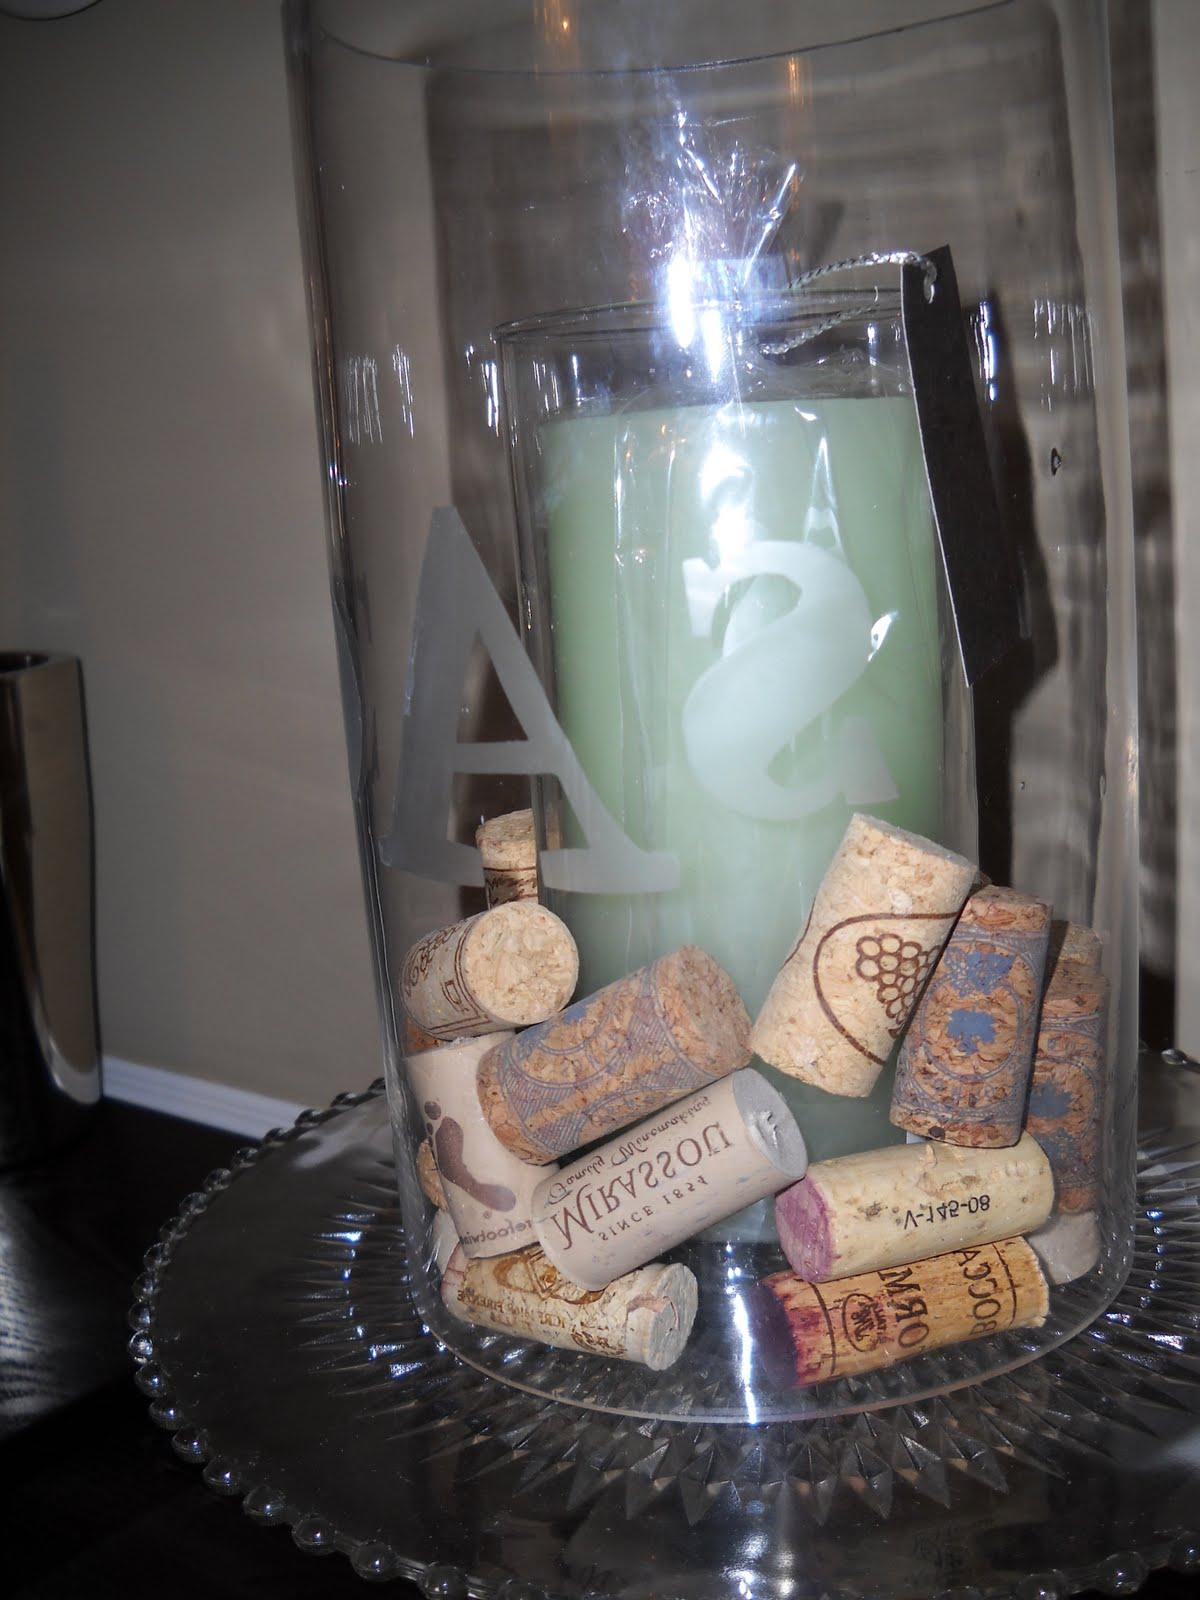 and some wine corks-